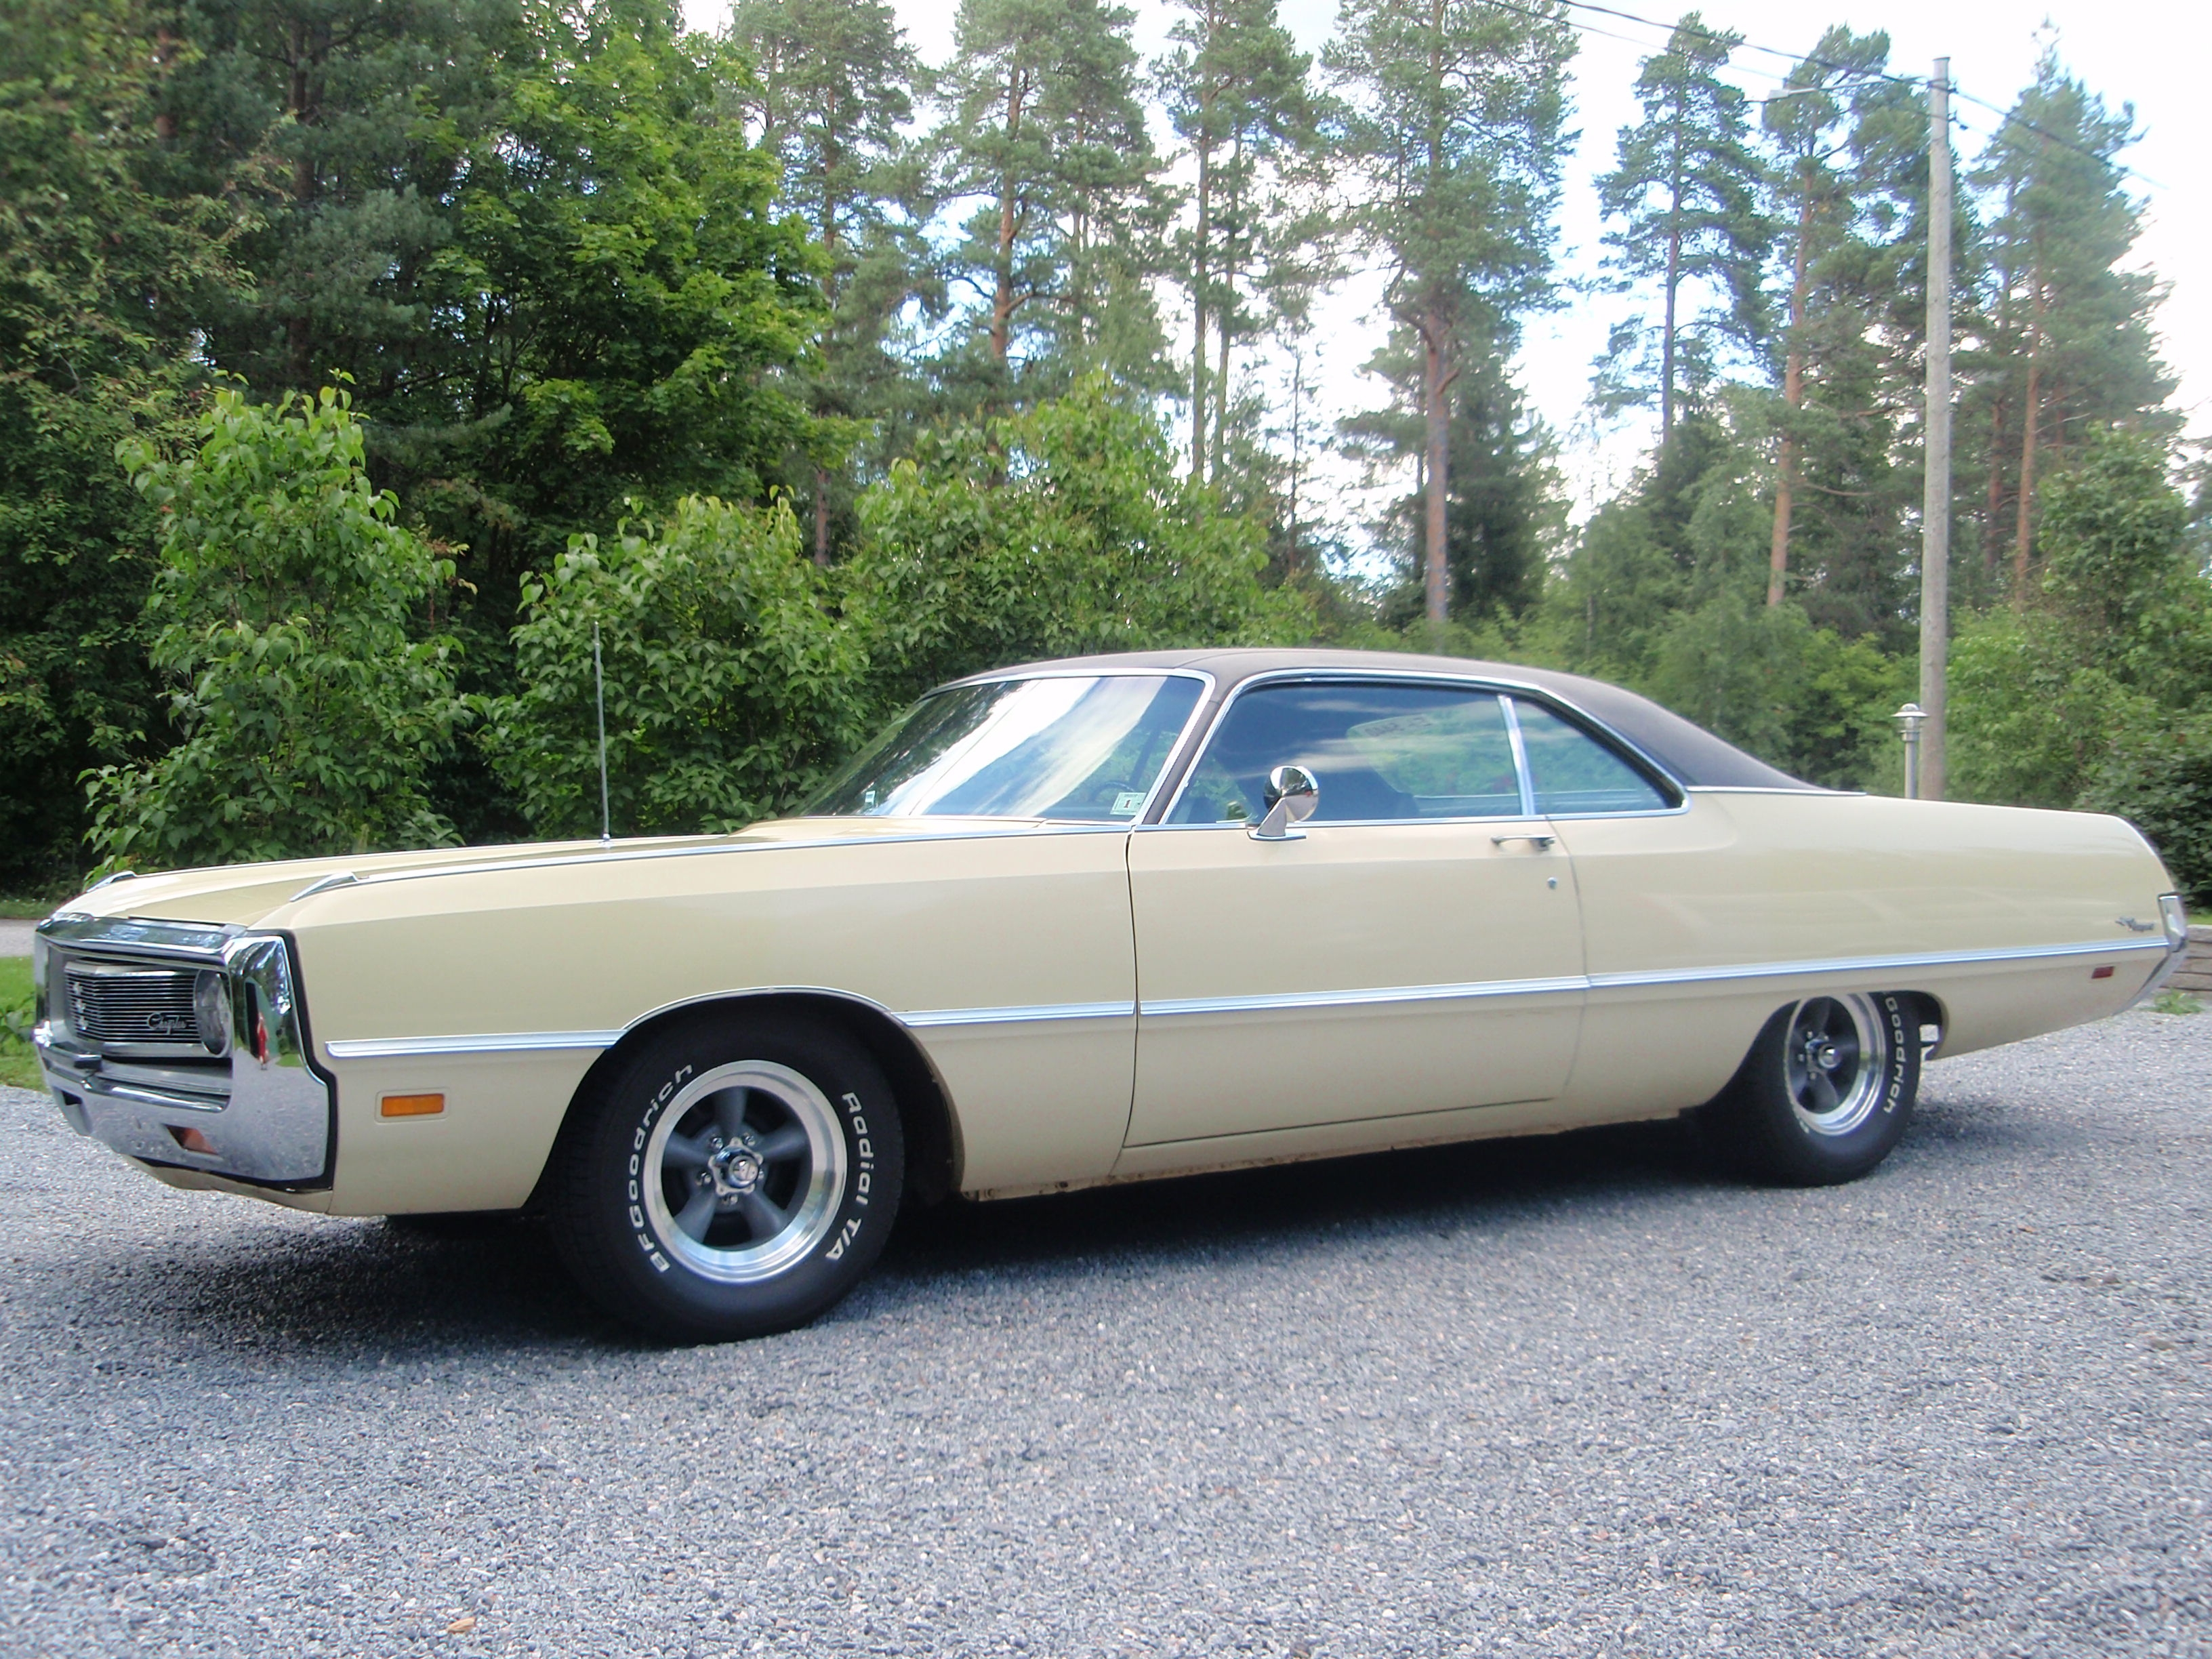 Toniq S 1969 Chrysler Newport In Pyh 228 J 228 Rvi